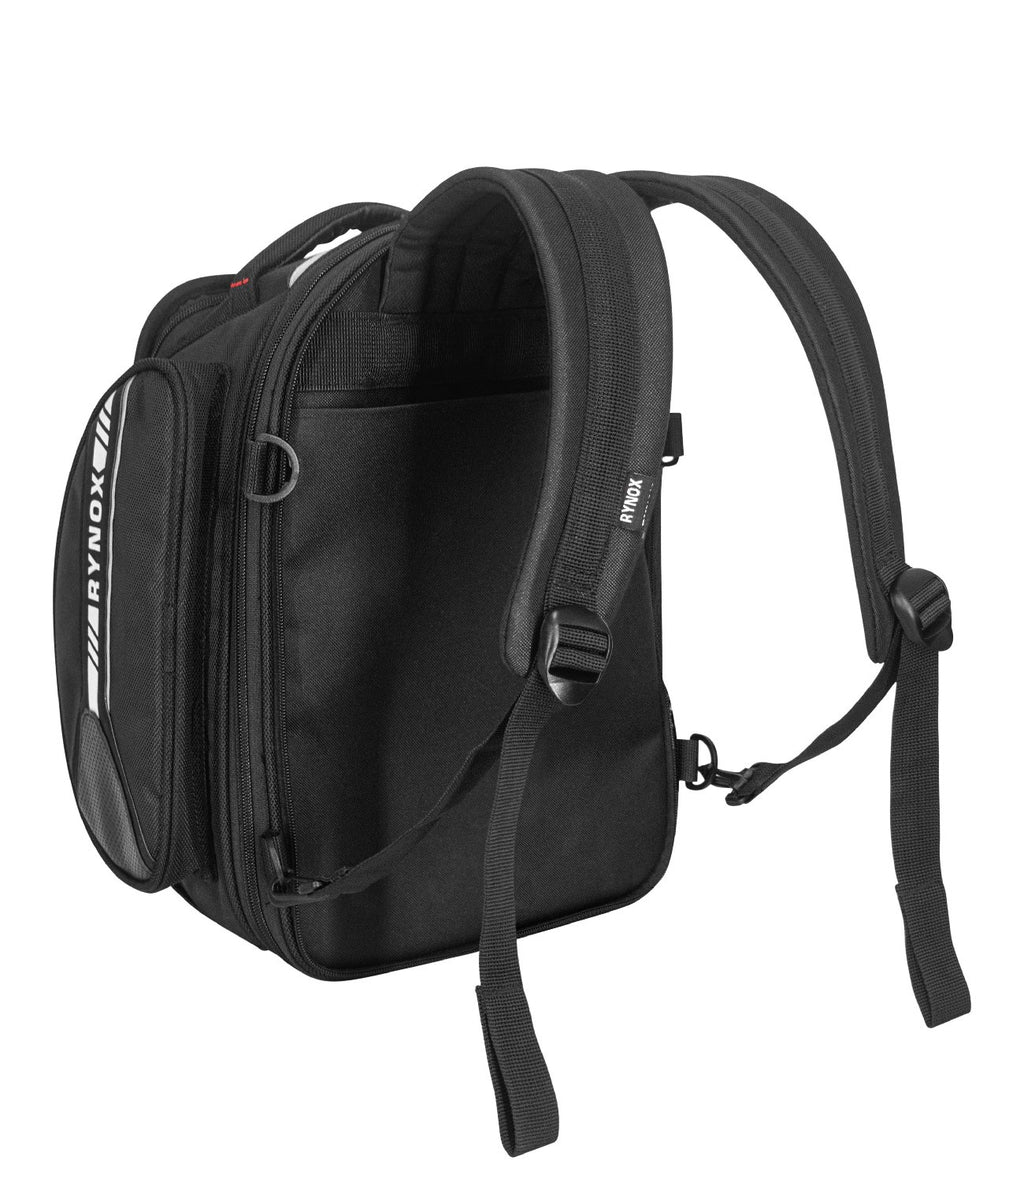 Rynox Optimus Tank Bag